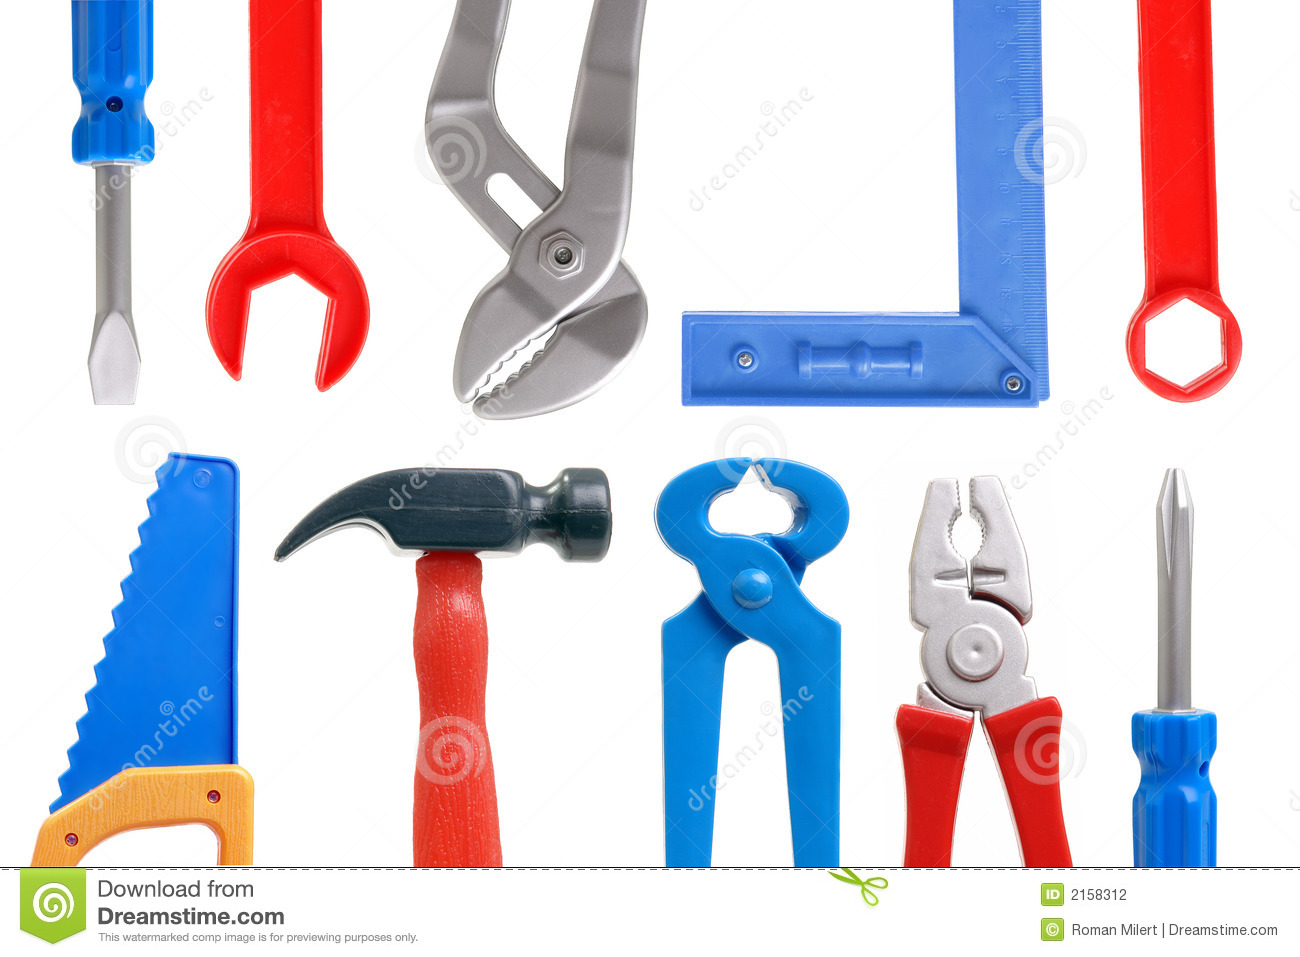 Set of plastic toy tools over white background.